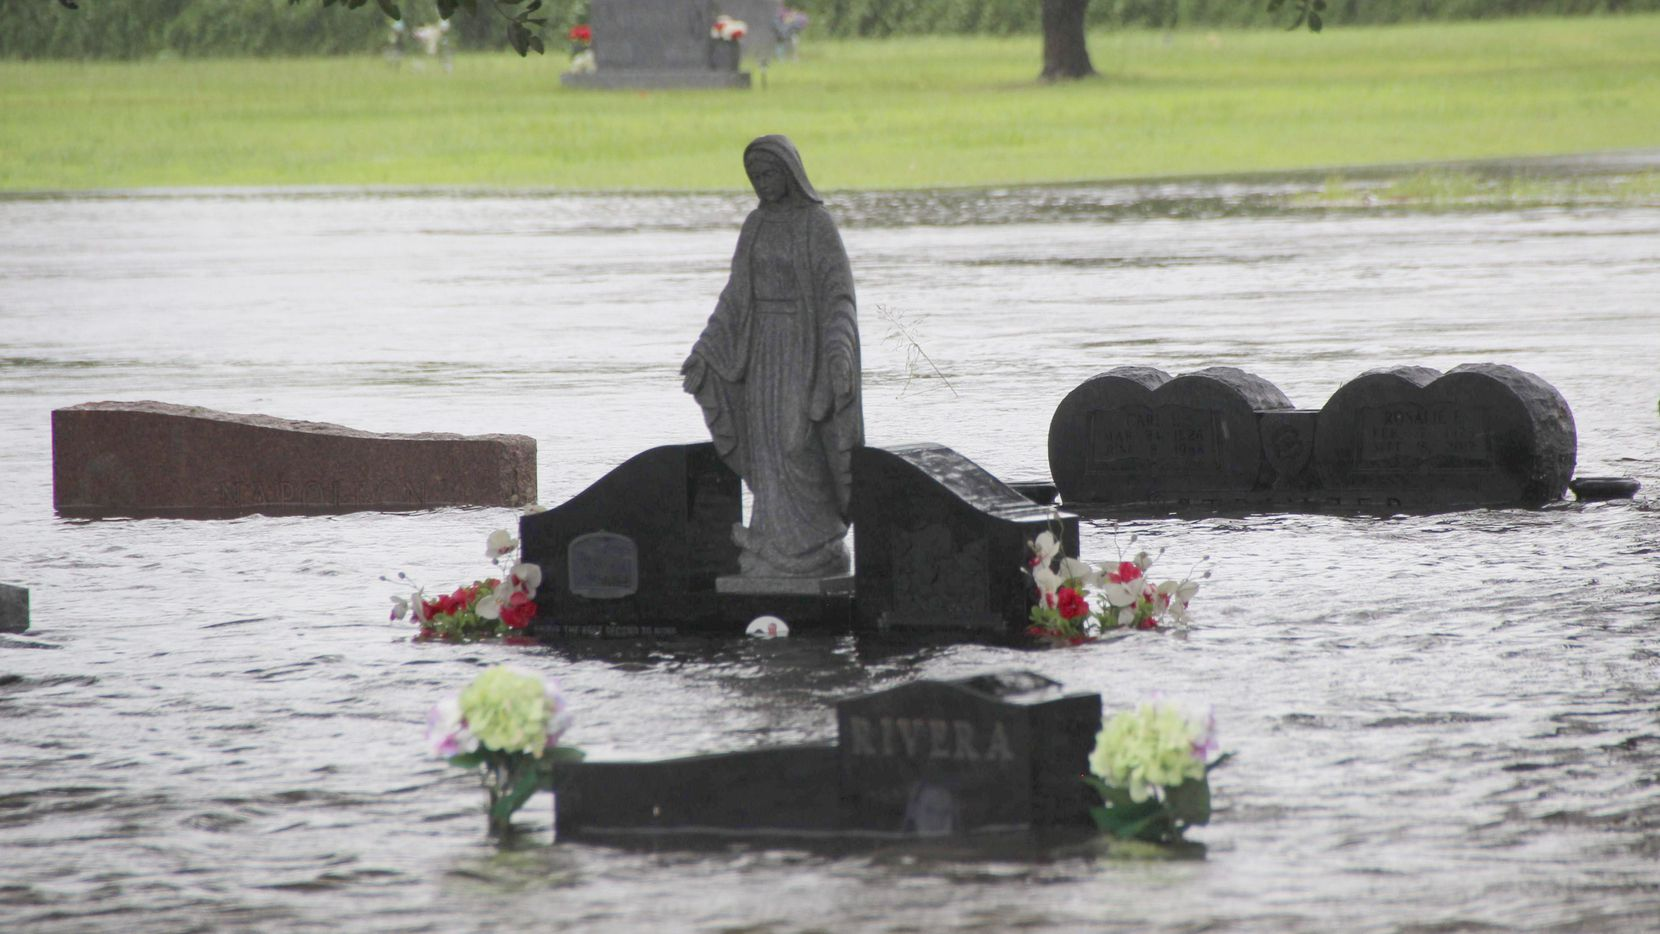 The South Park Cemetery in Pearland, Texas, is flooded by rains from Hurricane Harvey on August 29, 2017.